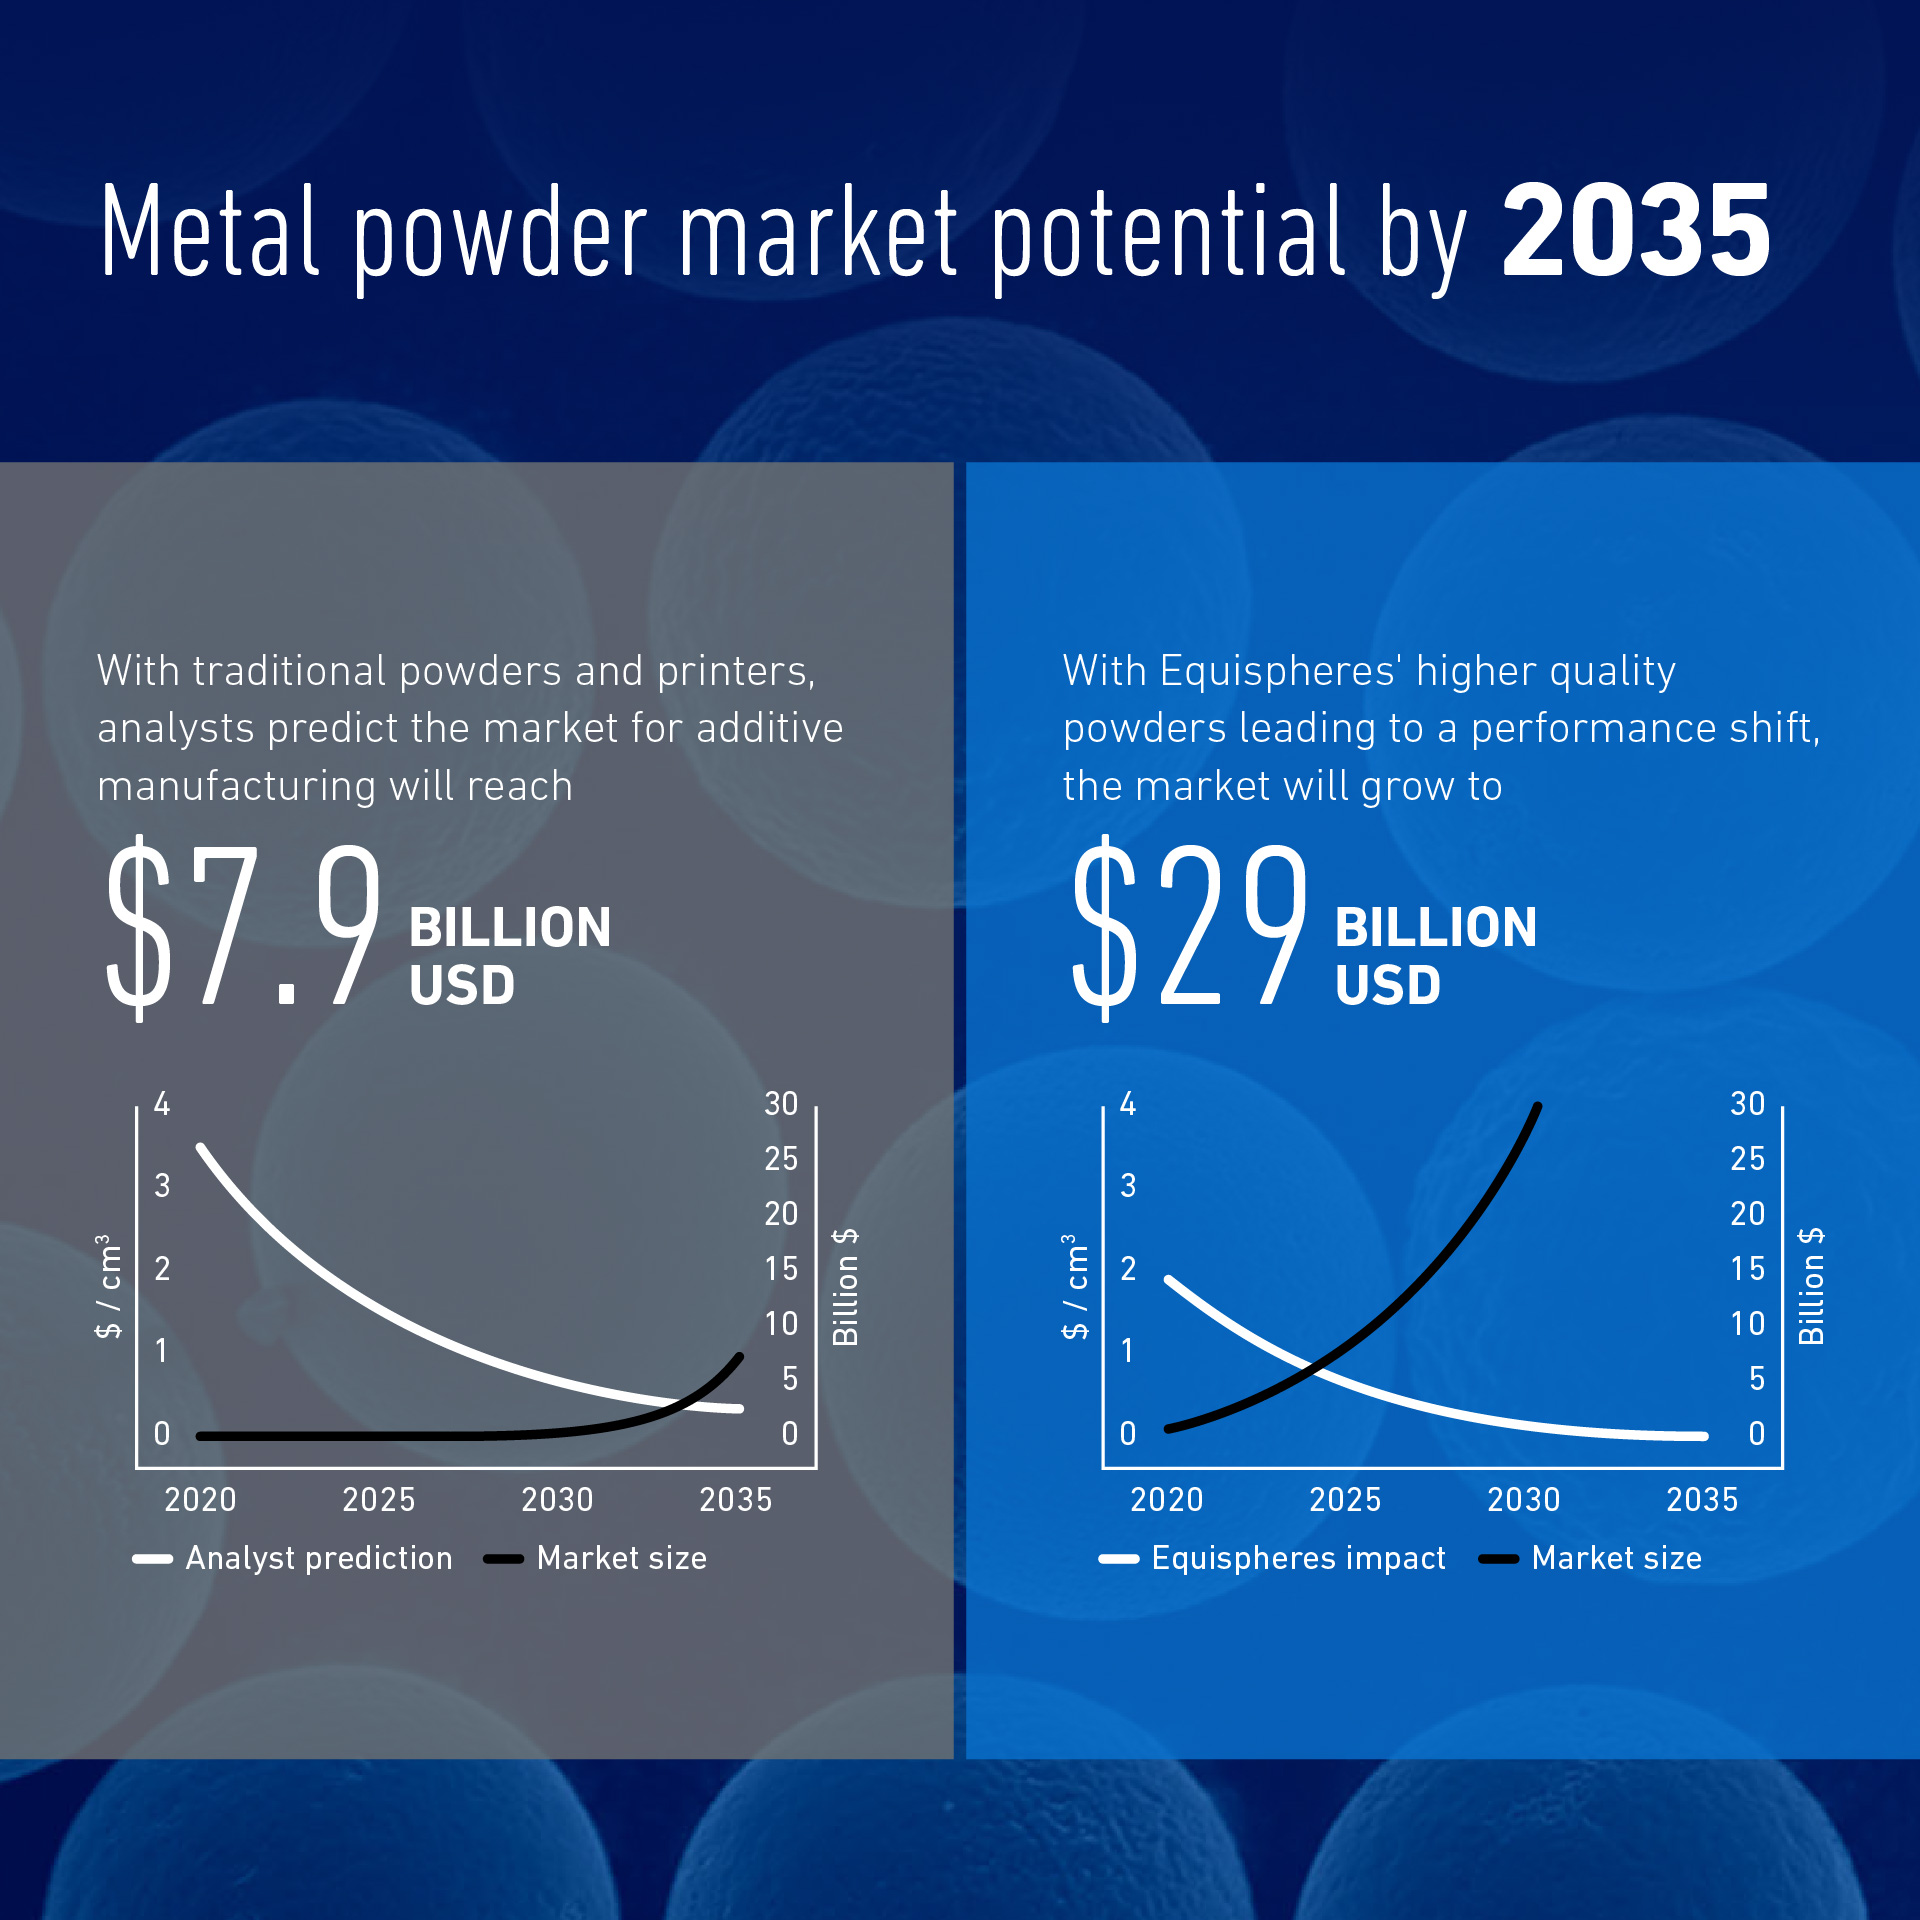 Our powder will increase performance, allowing the metal printing market to grow.